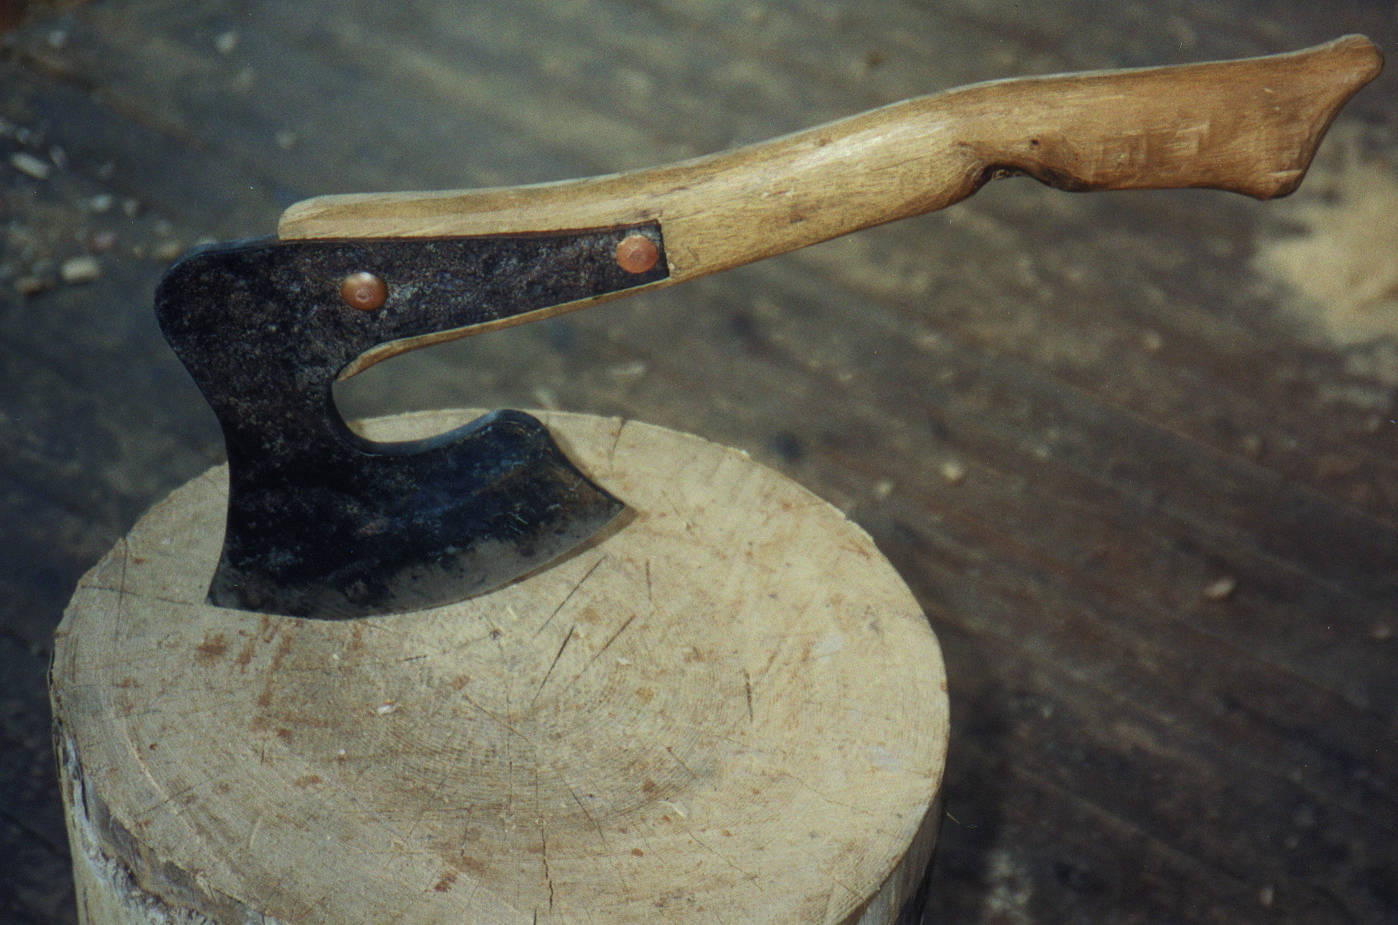 a democratic axe from the revered and missed William Coperthwaite